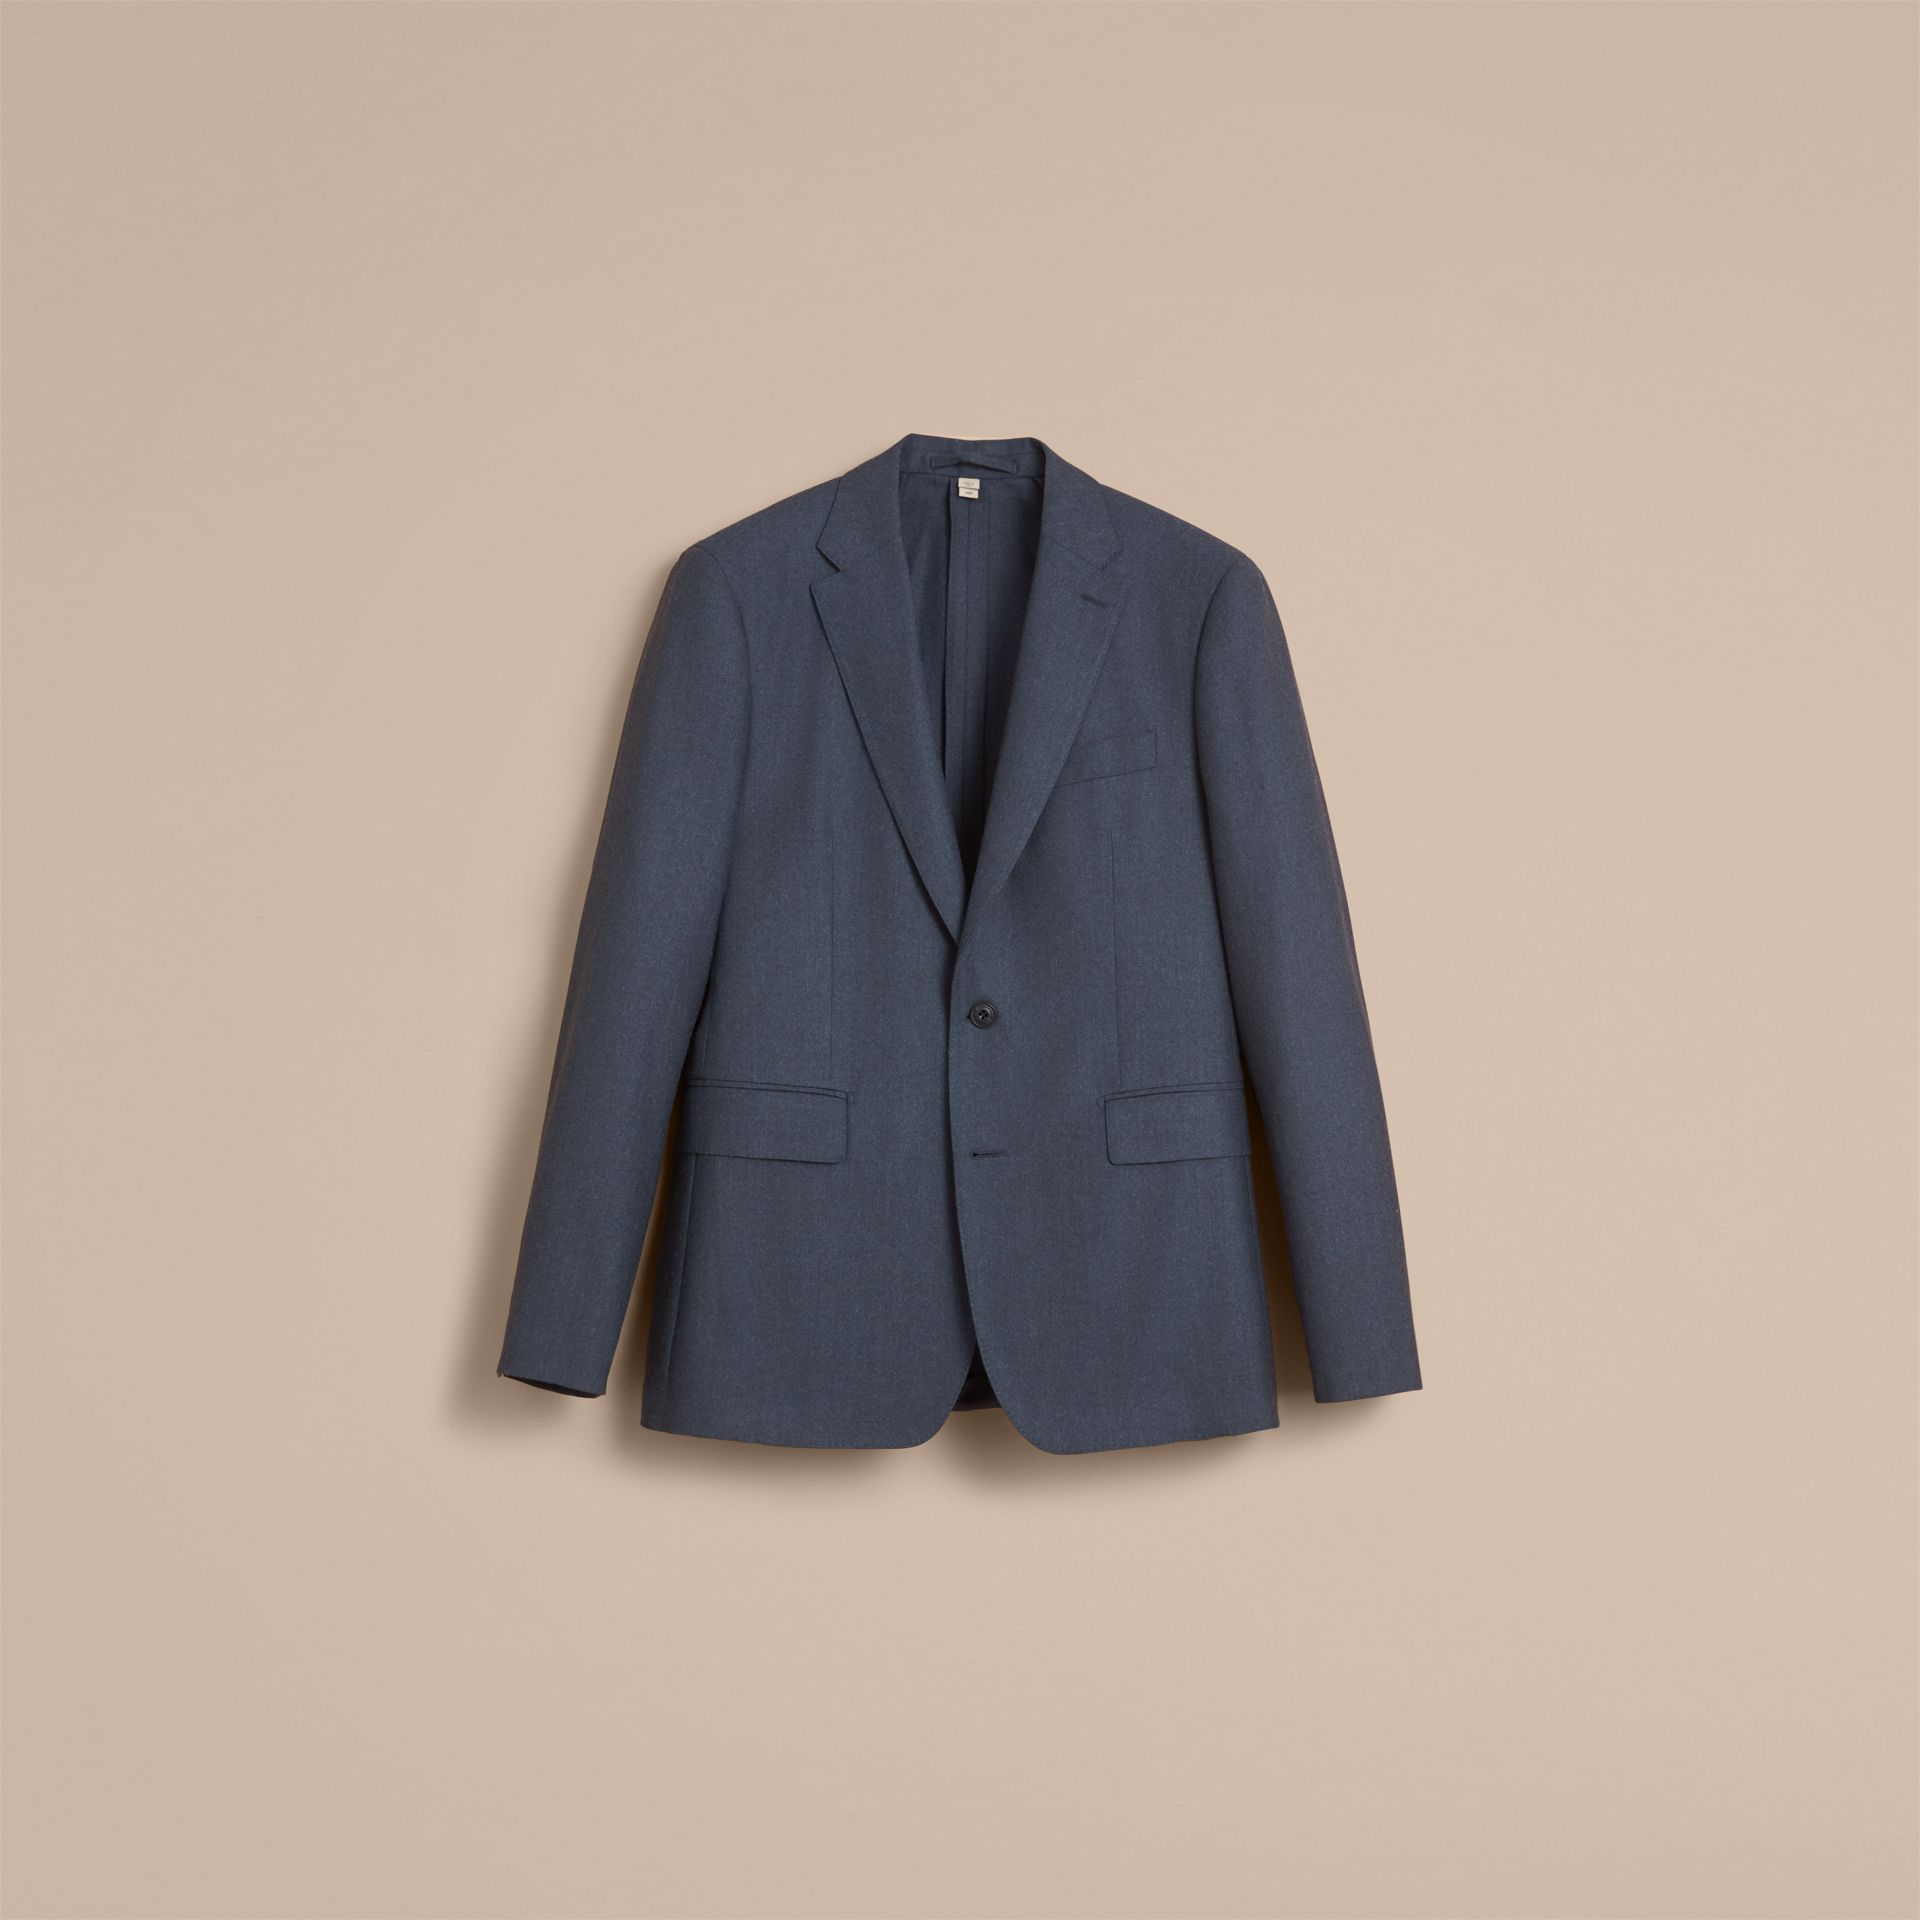 Soho Fit Wool Flannel Suit in Petrol Blue Melange - Men | Burberry - gallery image 4